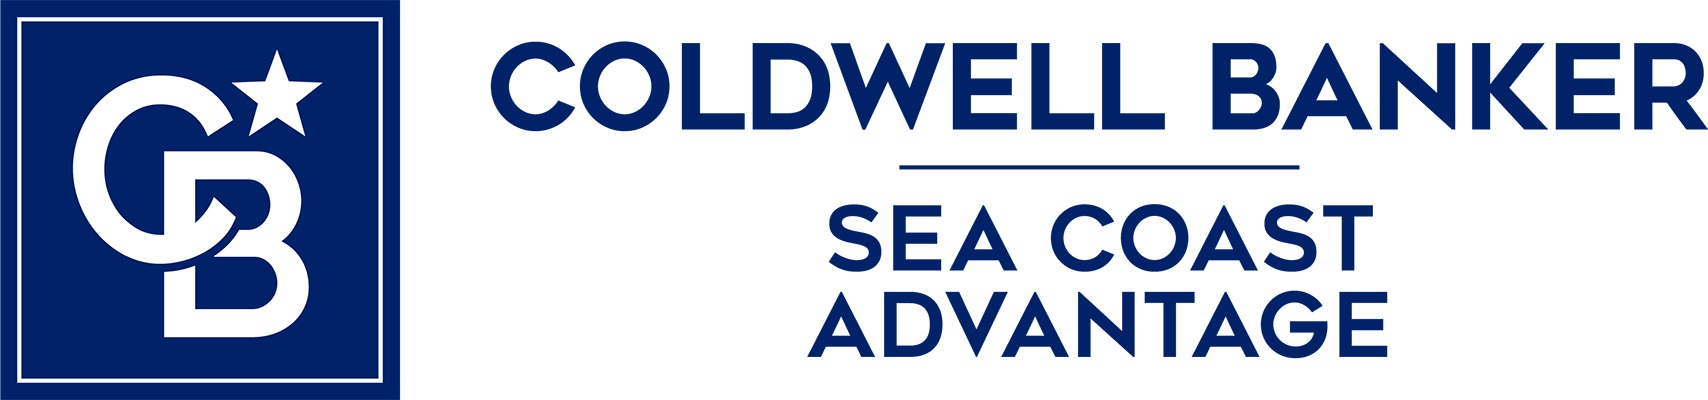 Karen Schwartz - Coldwell Banker Sea Coast Advantage Realty